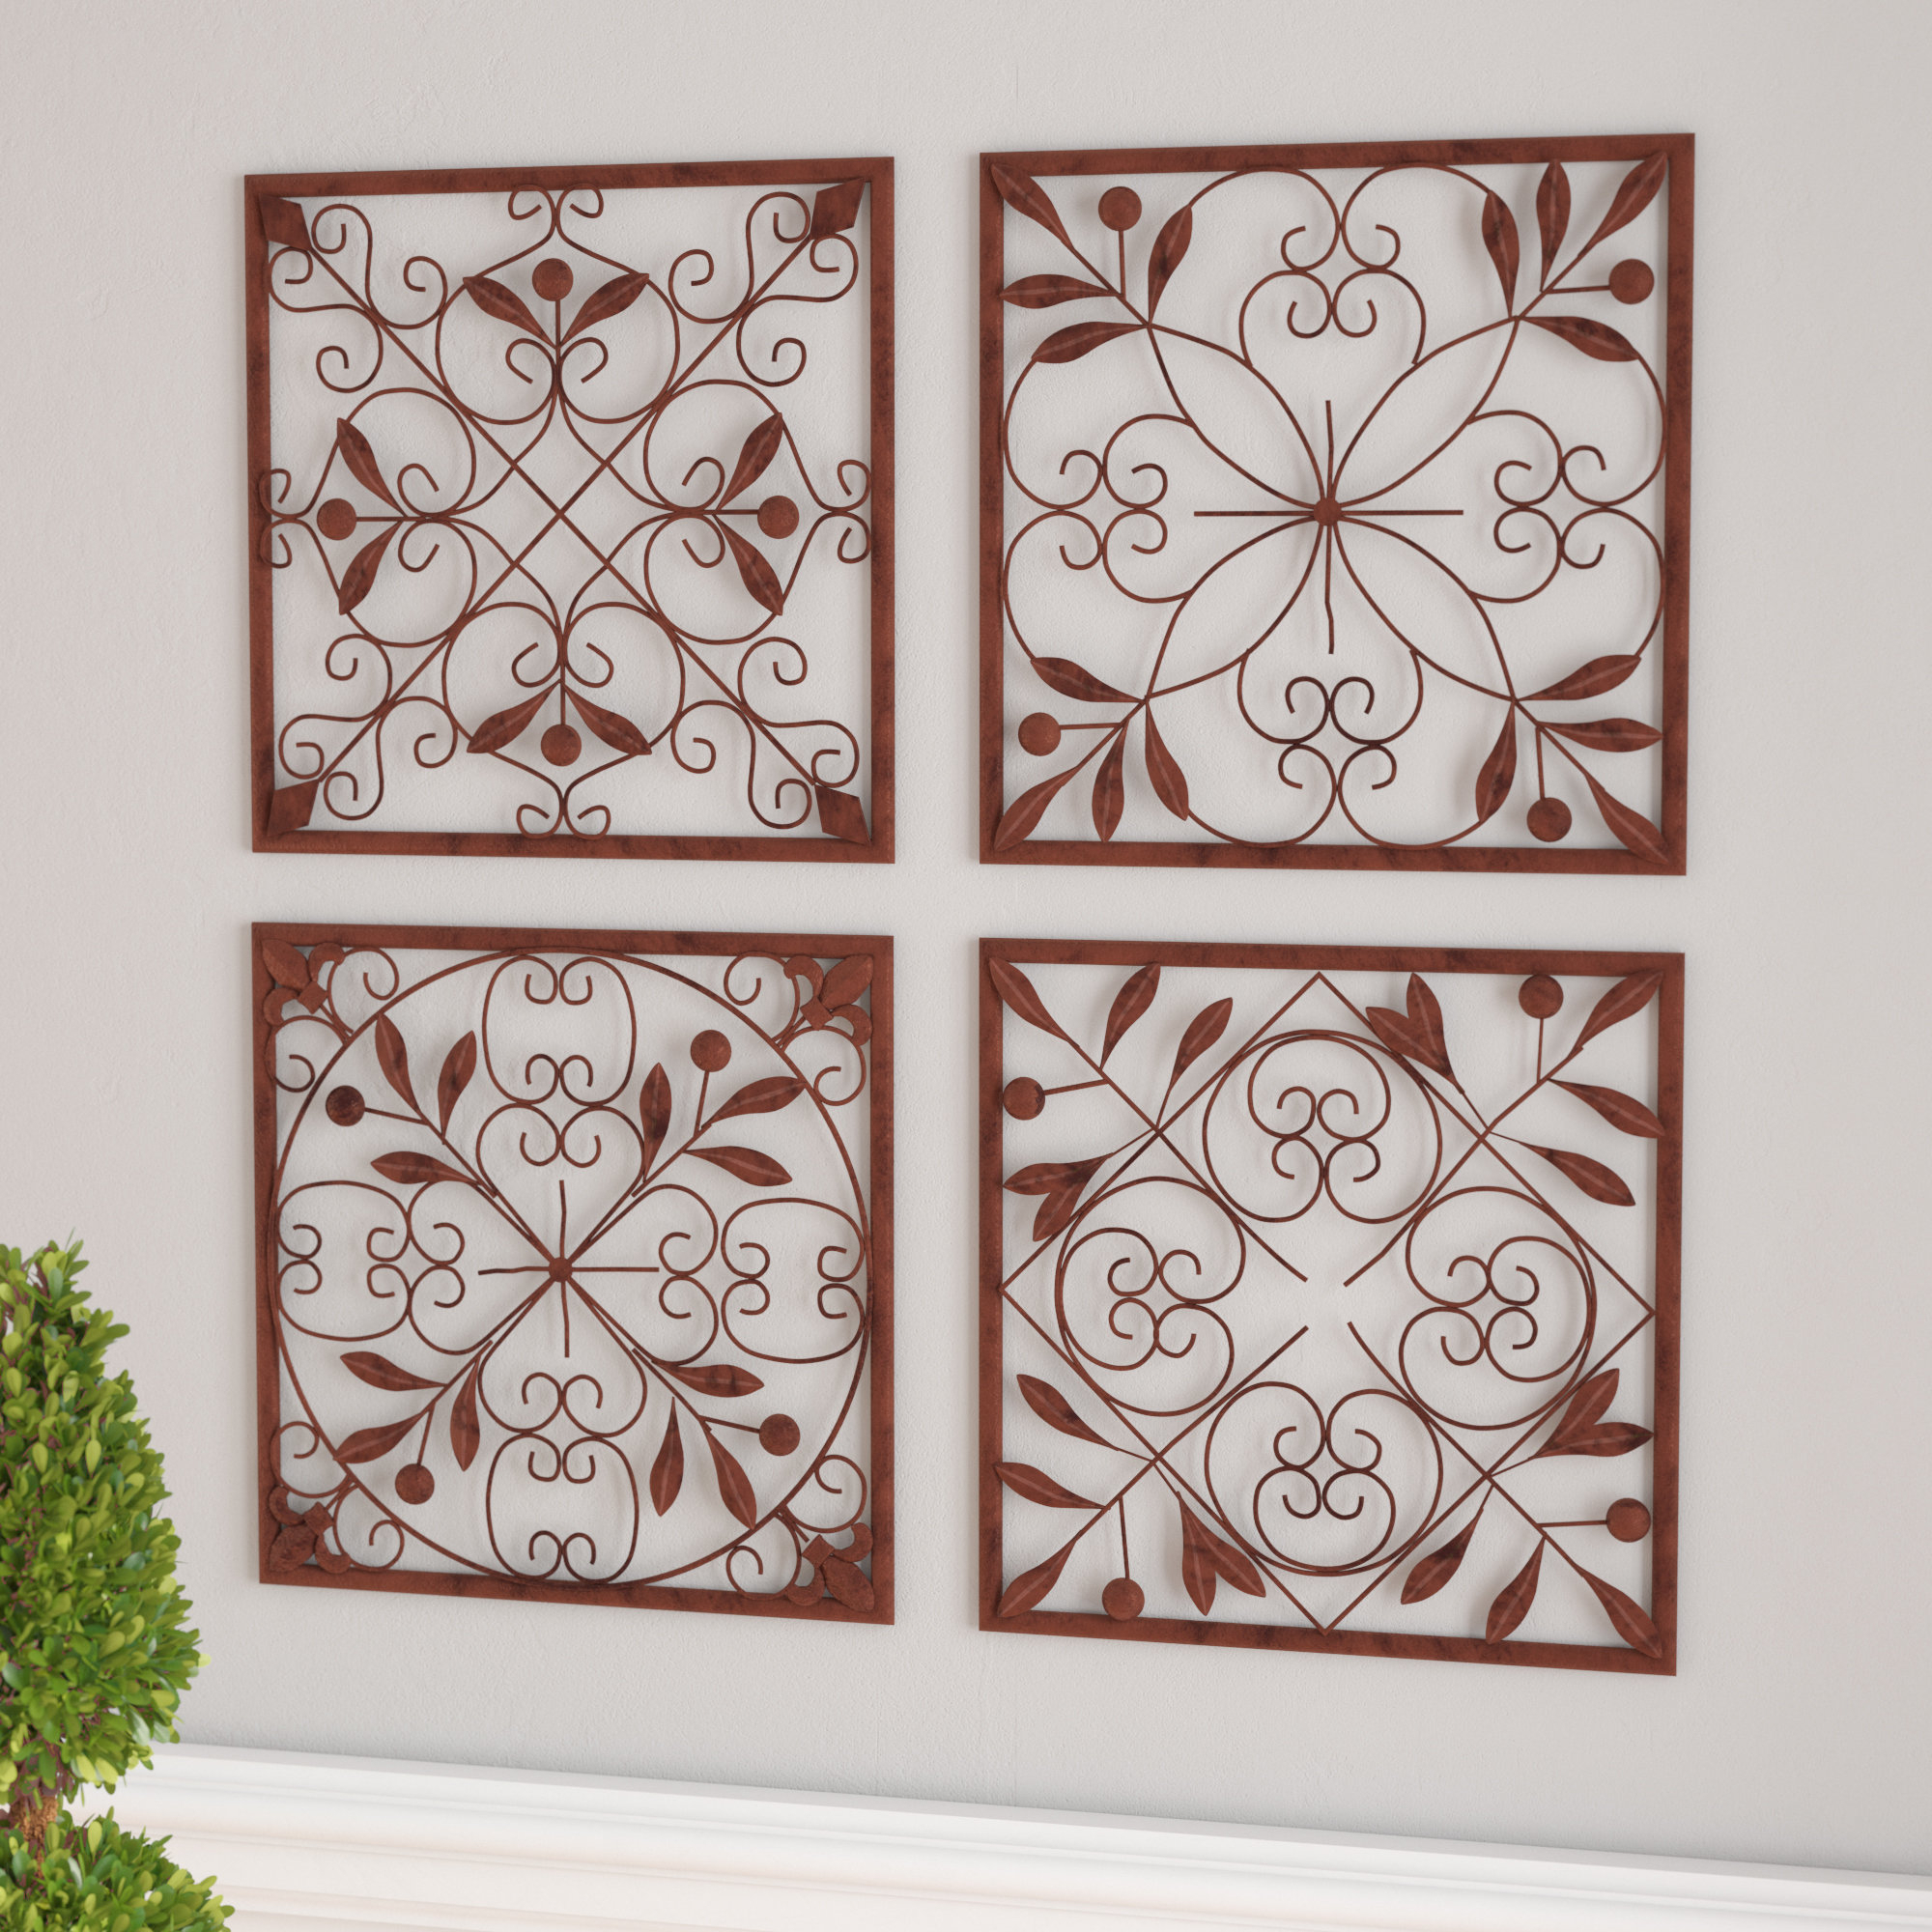 Wayfair Regarding 1 Piece Ortie Panel Wall Decor (Gallery 11 of 20)